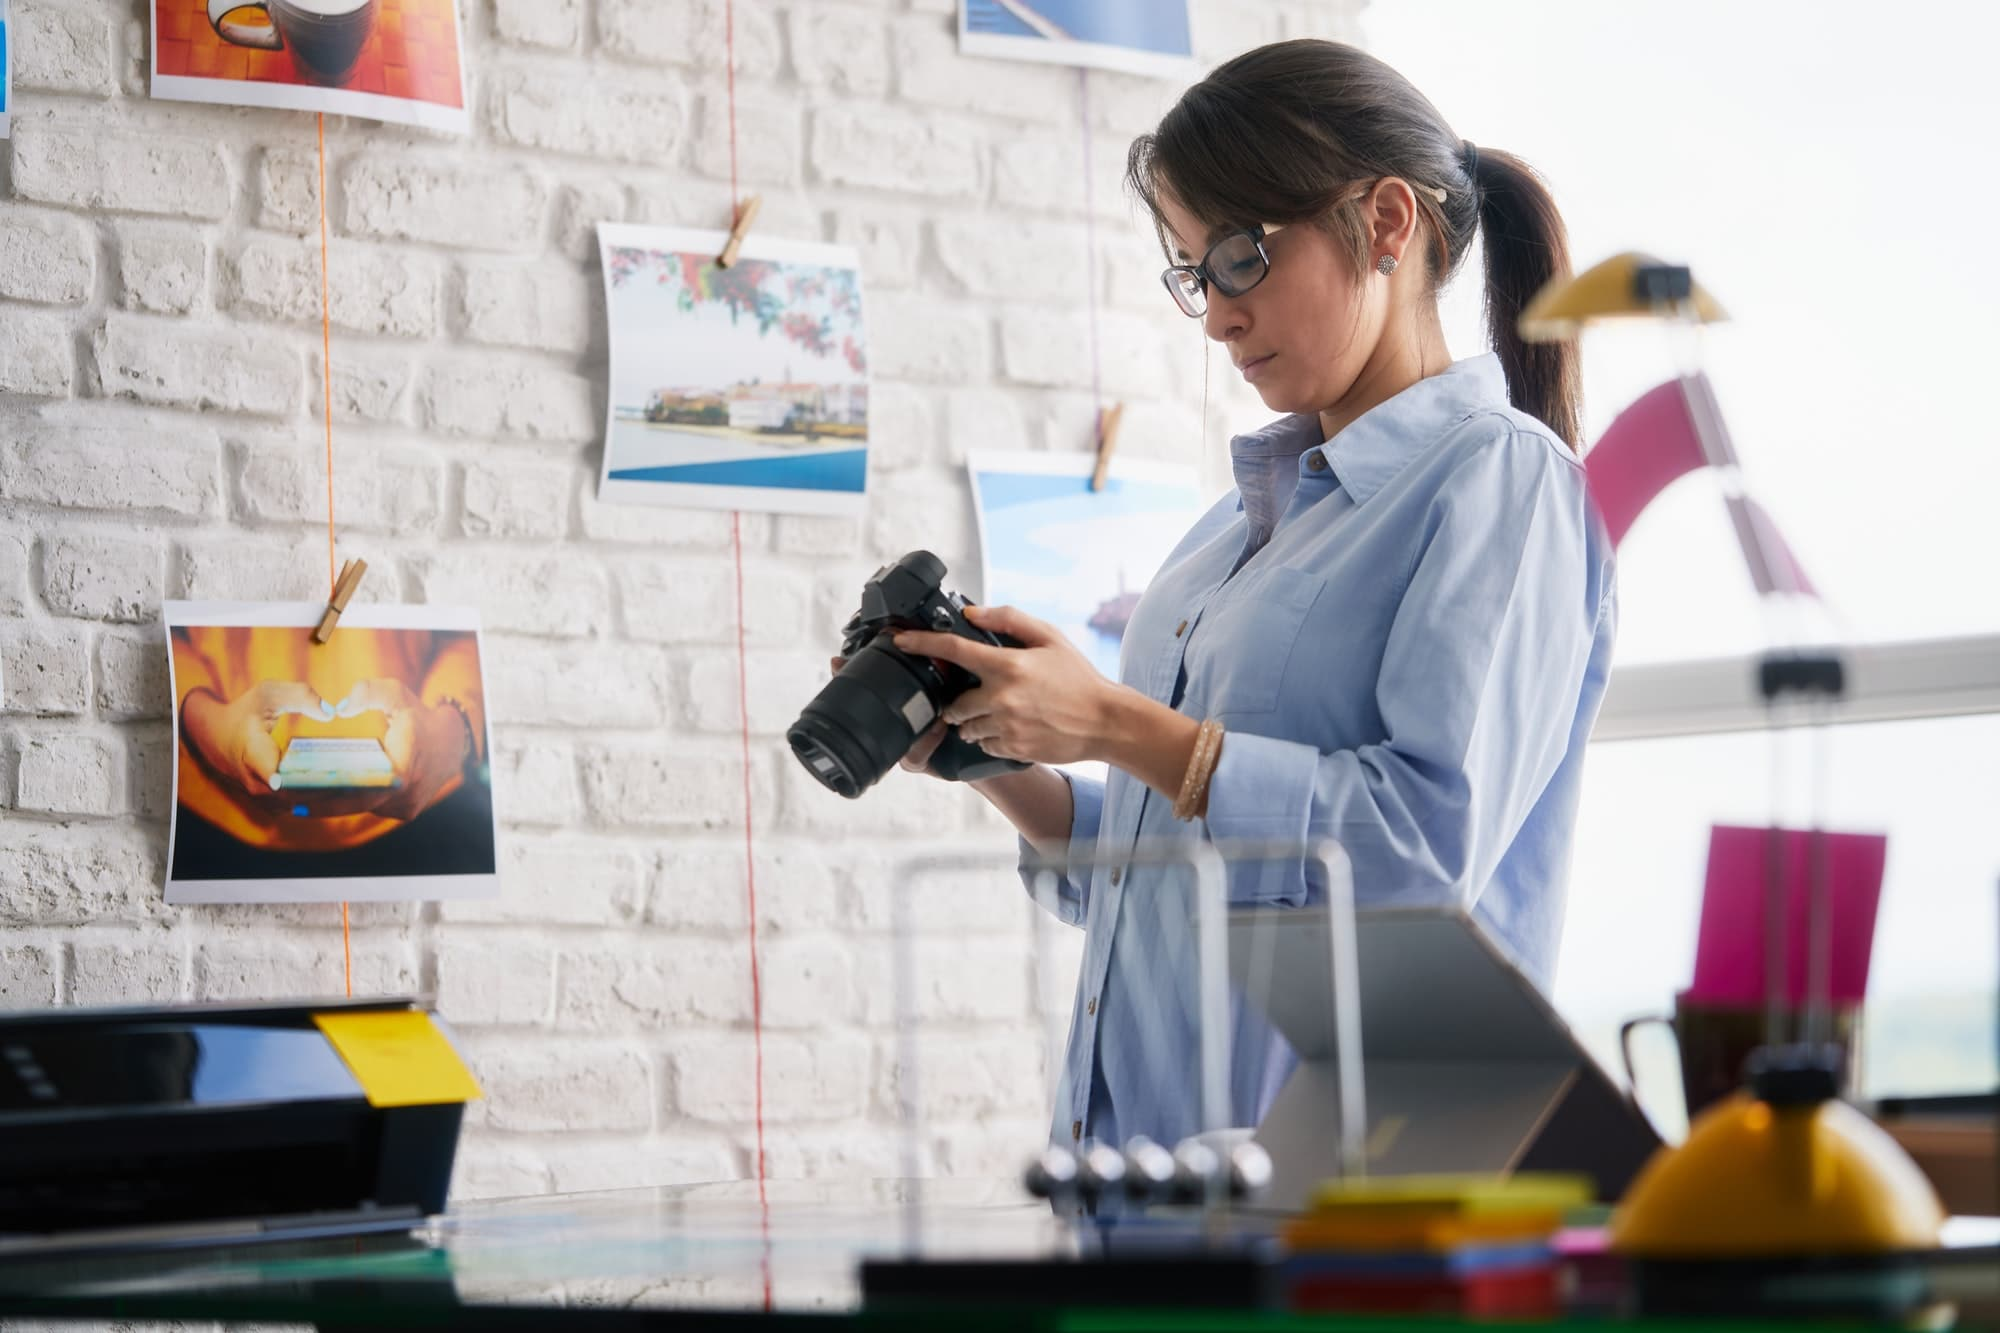 Photographer Working And Checking Digital Camera Settings In Office